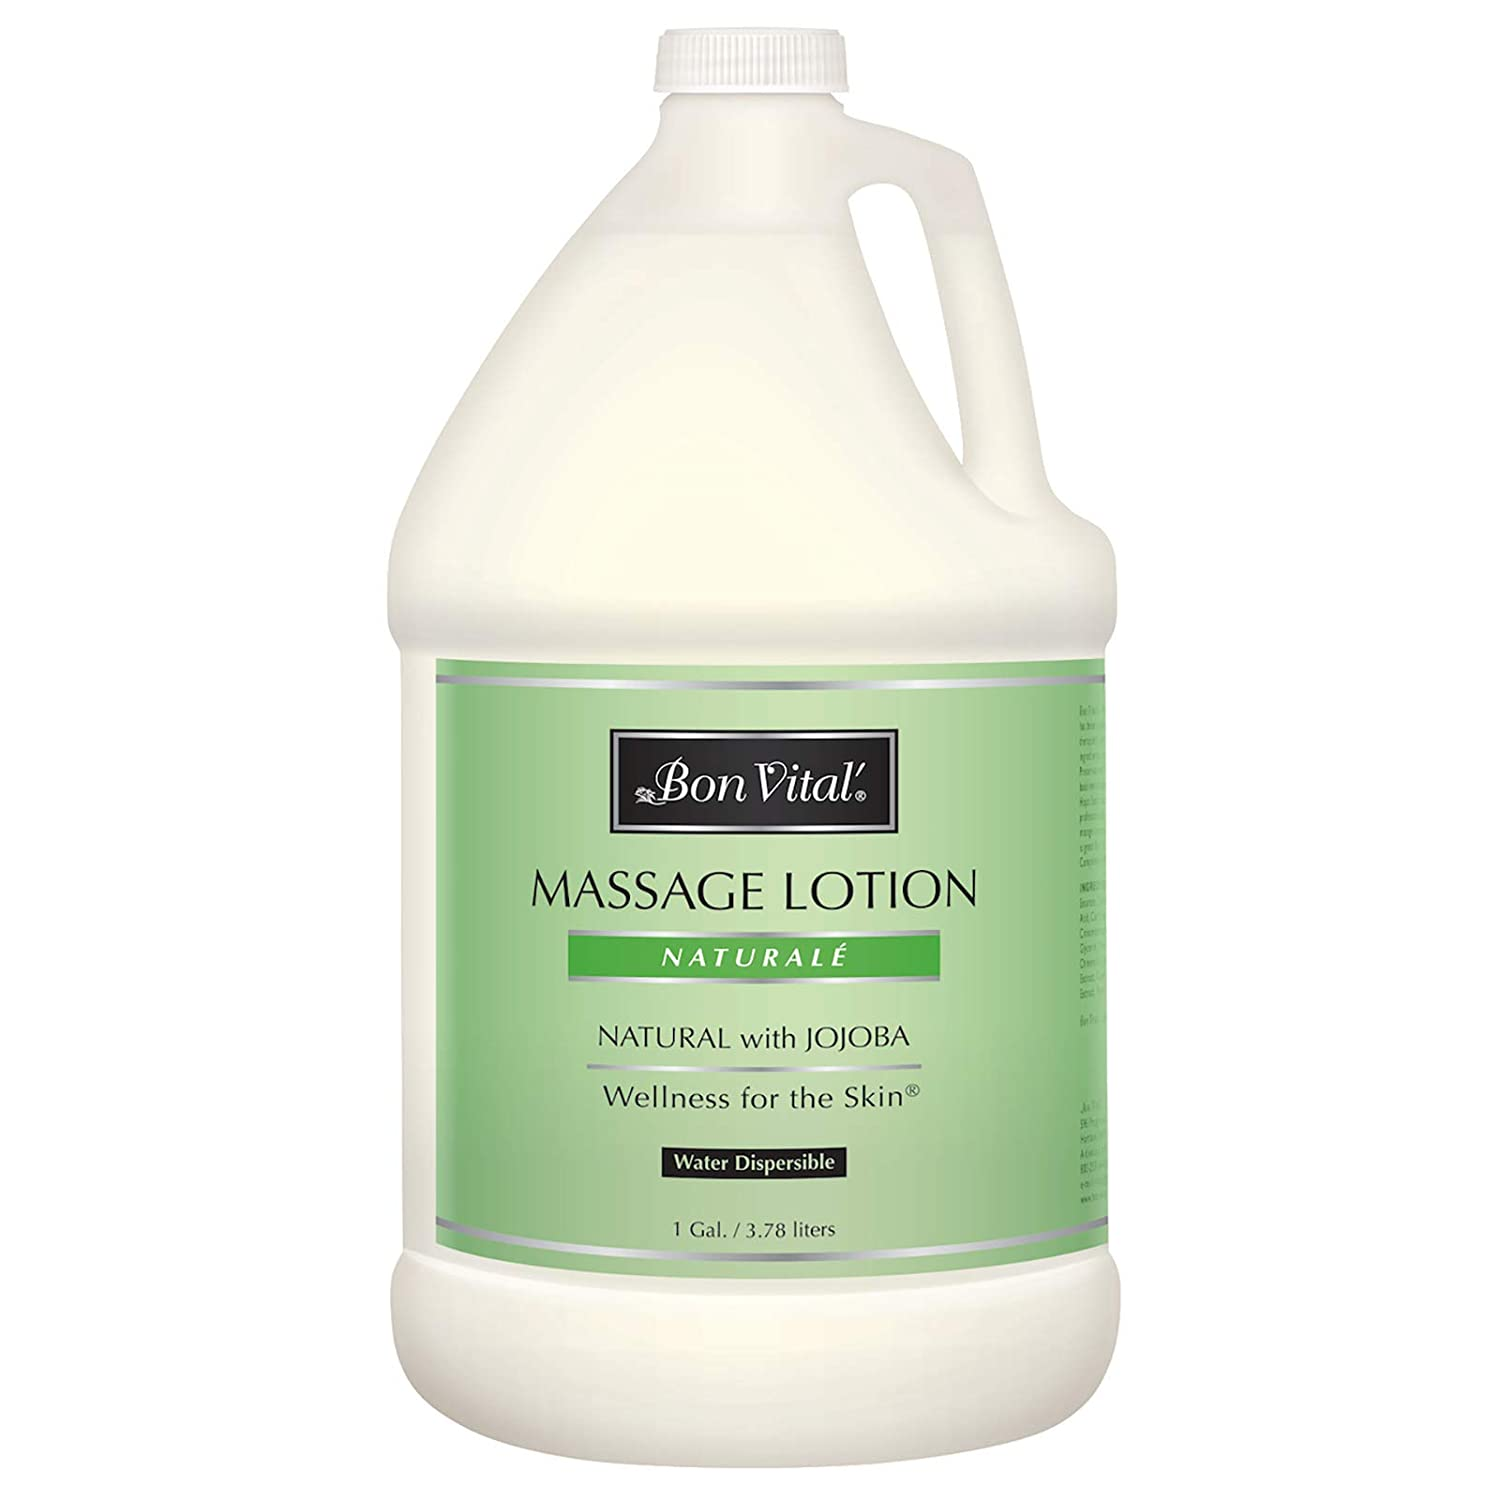 Bon Vital' Naturale Massage Lotion Made with Natural Ingredients for an Earth-Friendly & Relaxing Massage, All Natural Moisturizer, Relieves Muscle Soreness and Increases Circulation, 1 Gallon Bottle